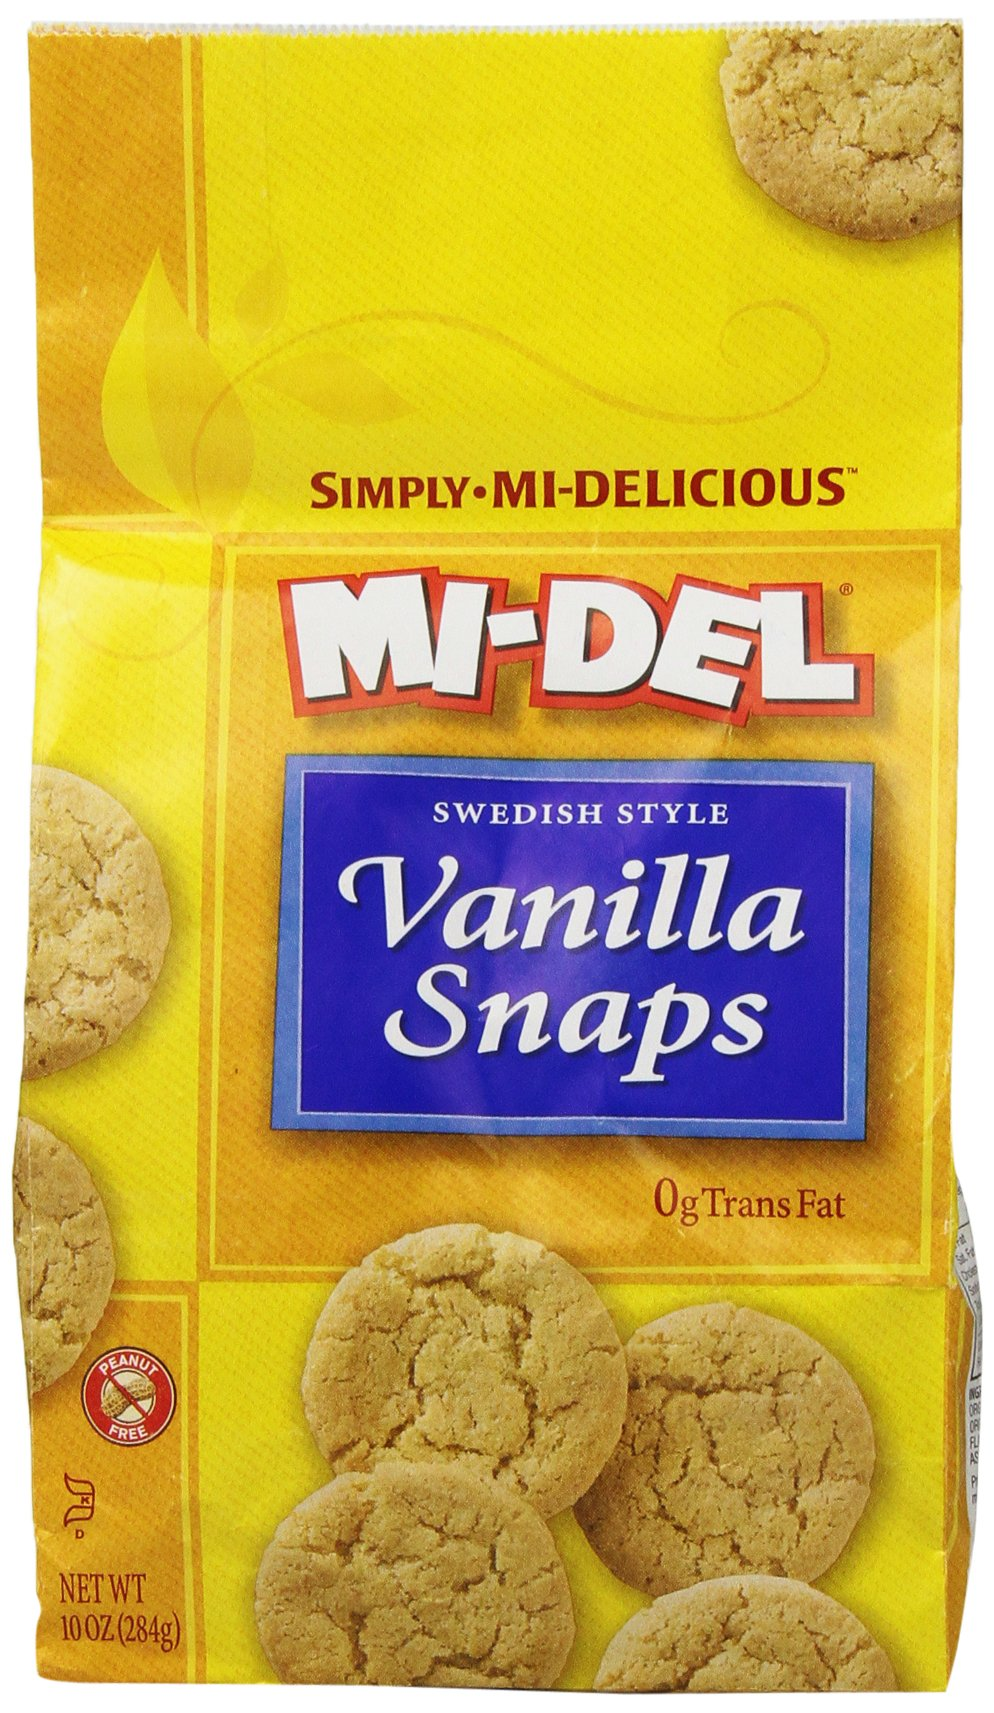 Mi-Del Swedish Style Cookies, Vanilla Snaps, 10 Ounce (Pack of 12) by Mi-Del